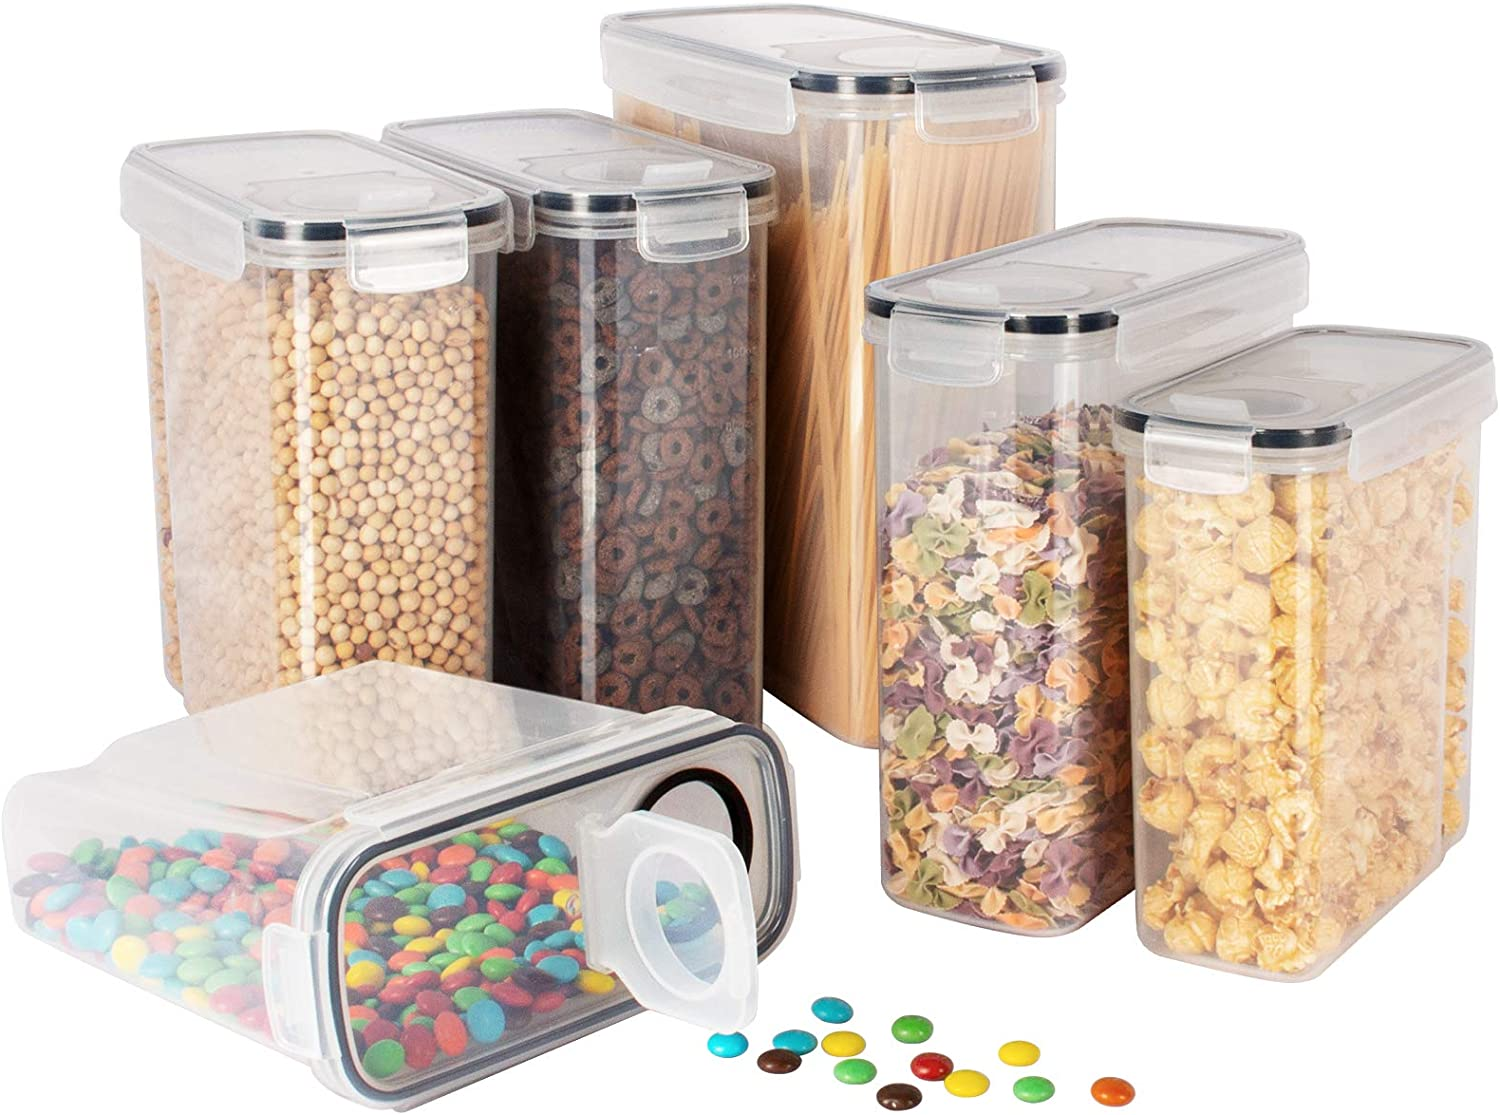 Kitsure Cereal Container with Easy Pouring Lids, Pantry Organization and Storage, Airtight Food Storage Containers for Pantry and Kitchen, 6-Pack Cereal Containers Storage Set for Multiple Demands